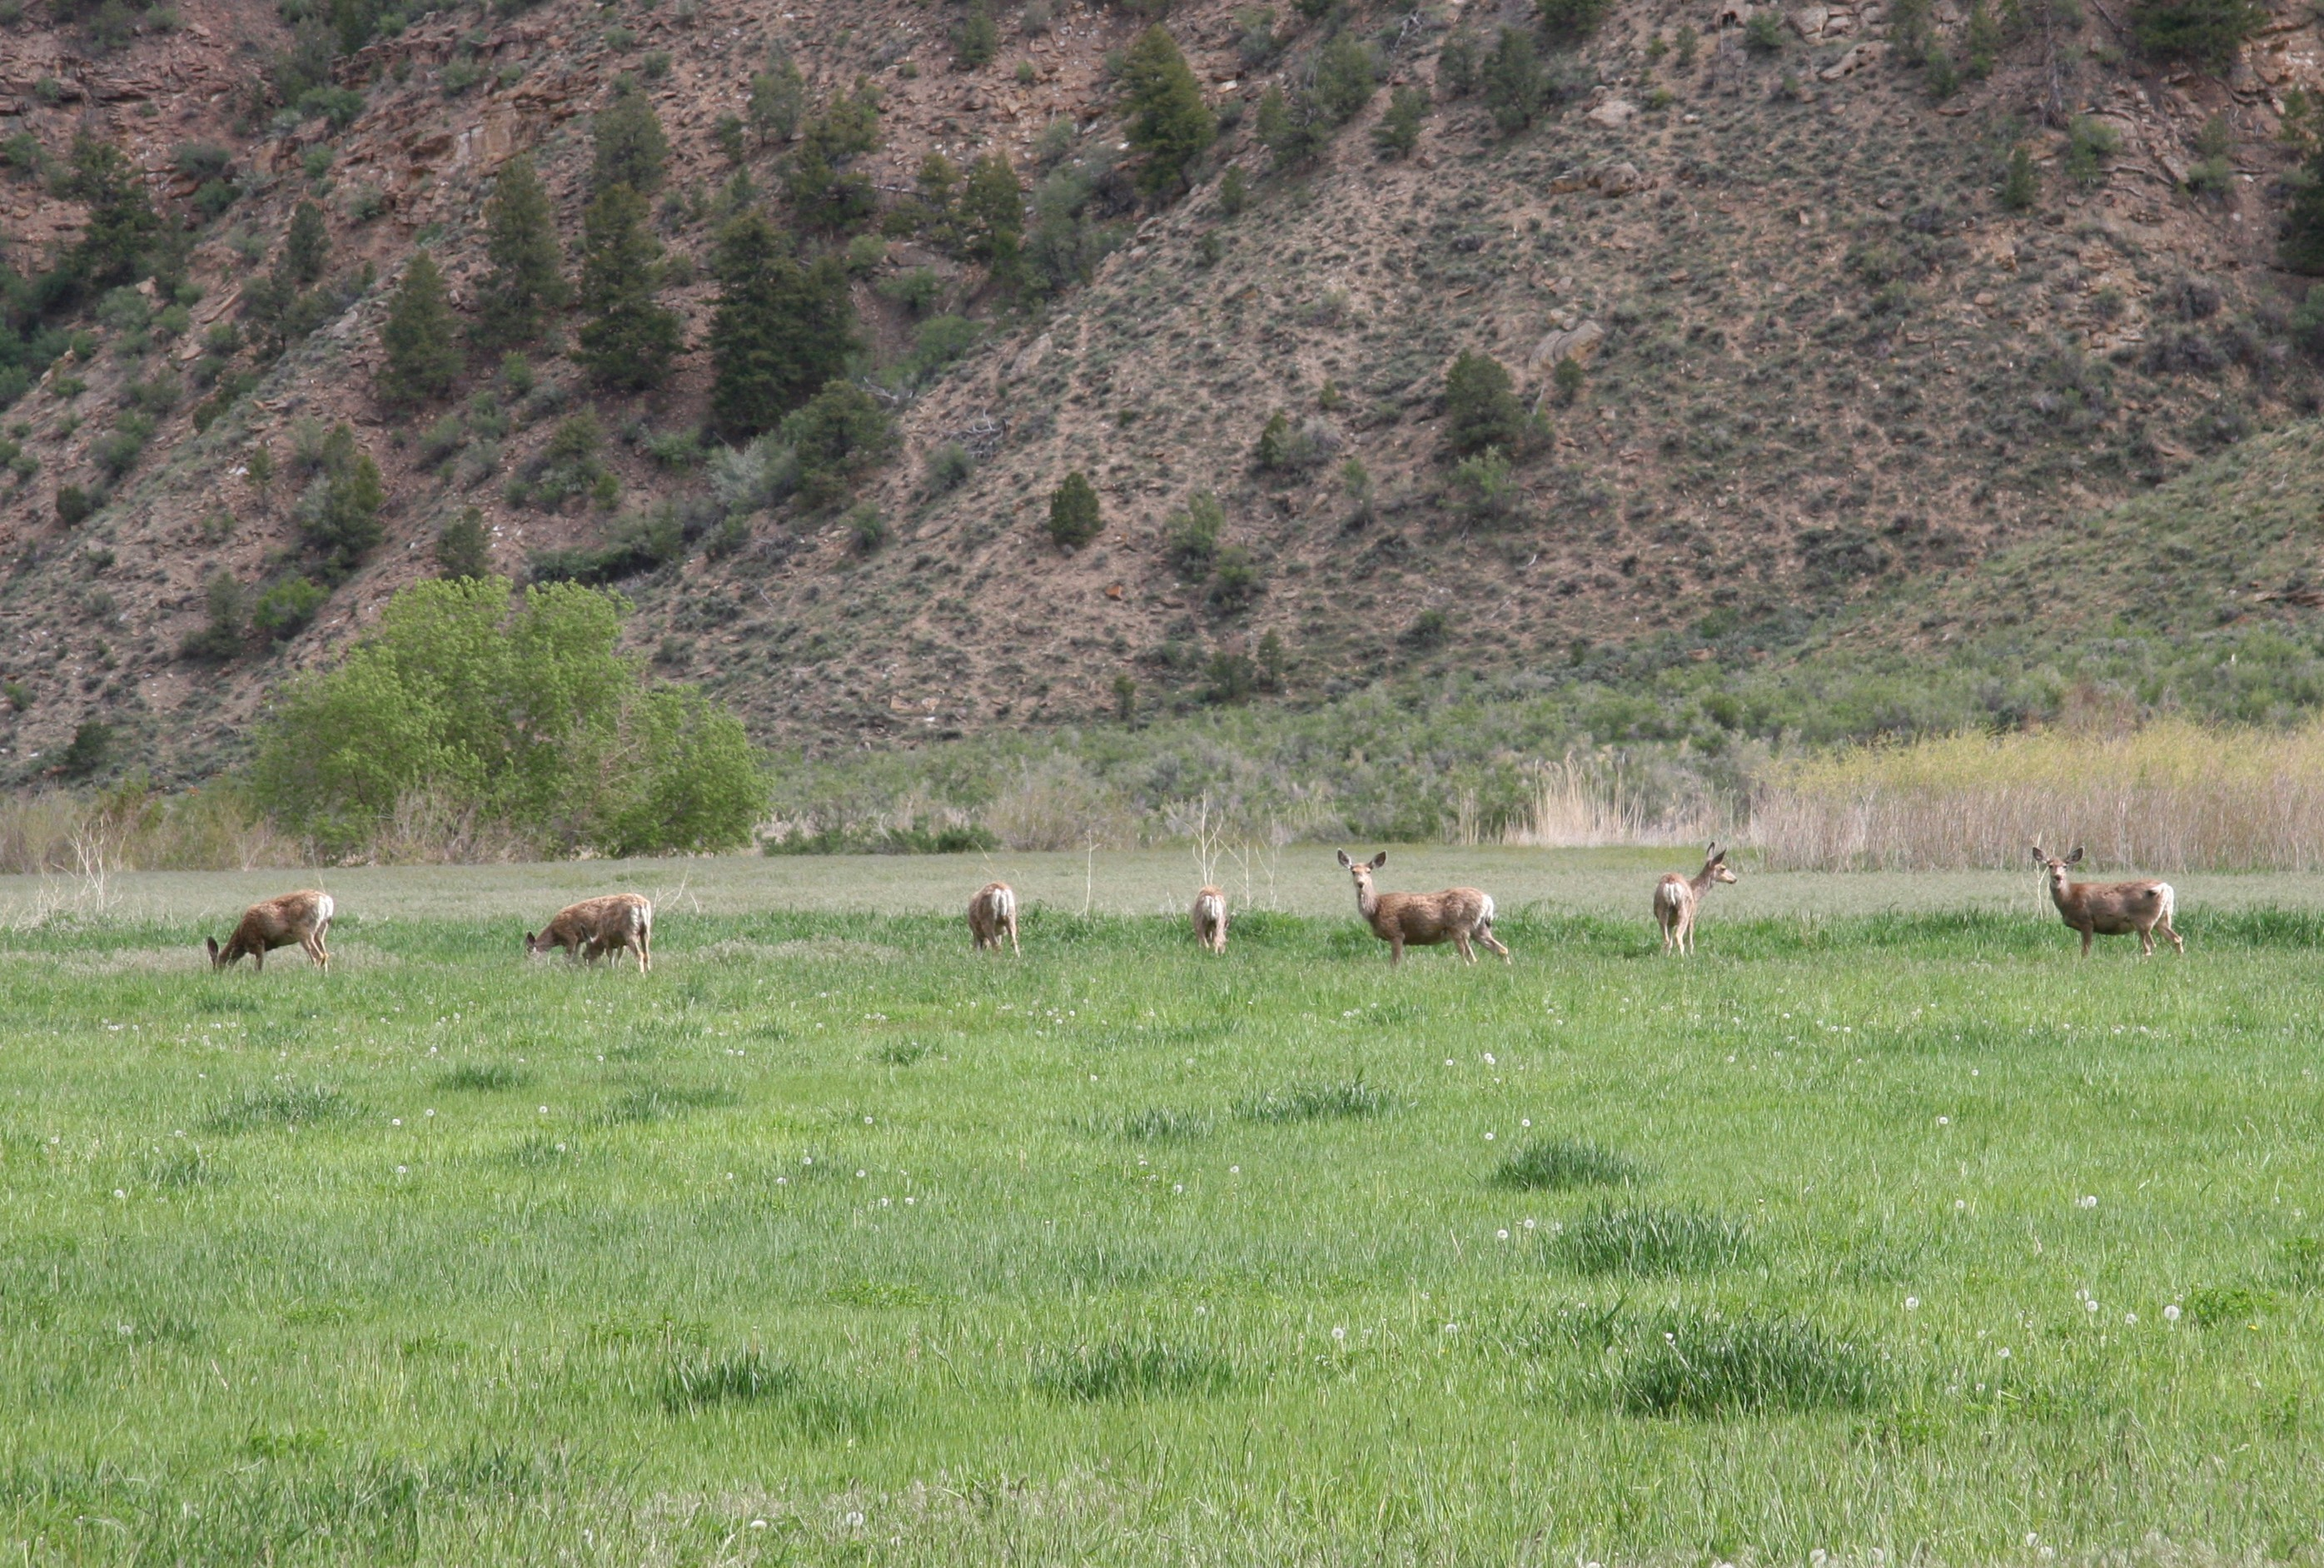 Deer and elk have replaced buffalo and bighorns in the canyons